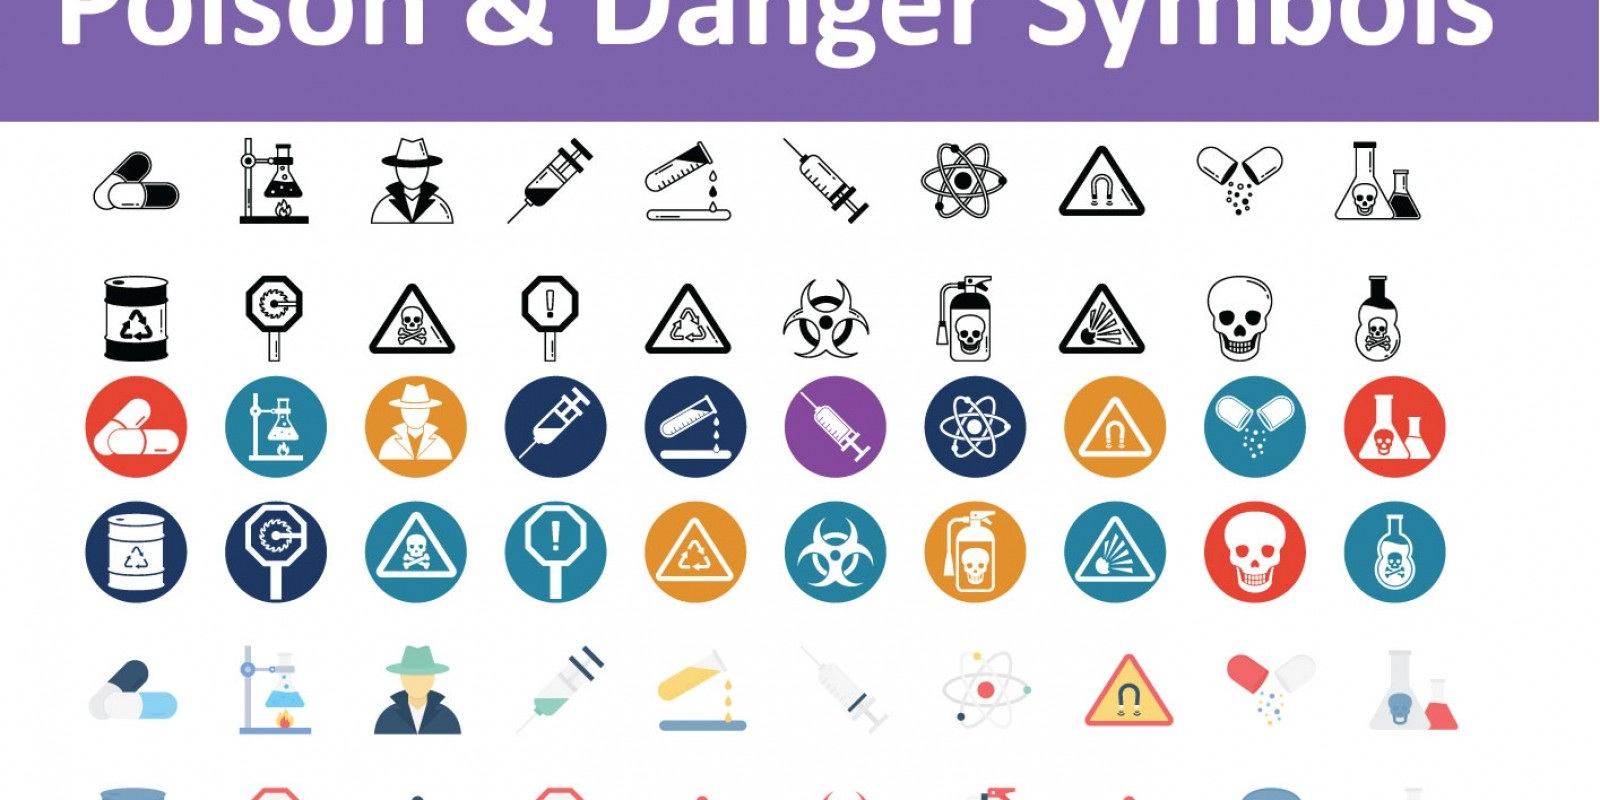 Poison And  Danger Symbols Vector Icons